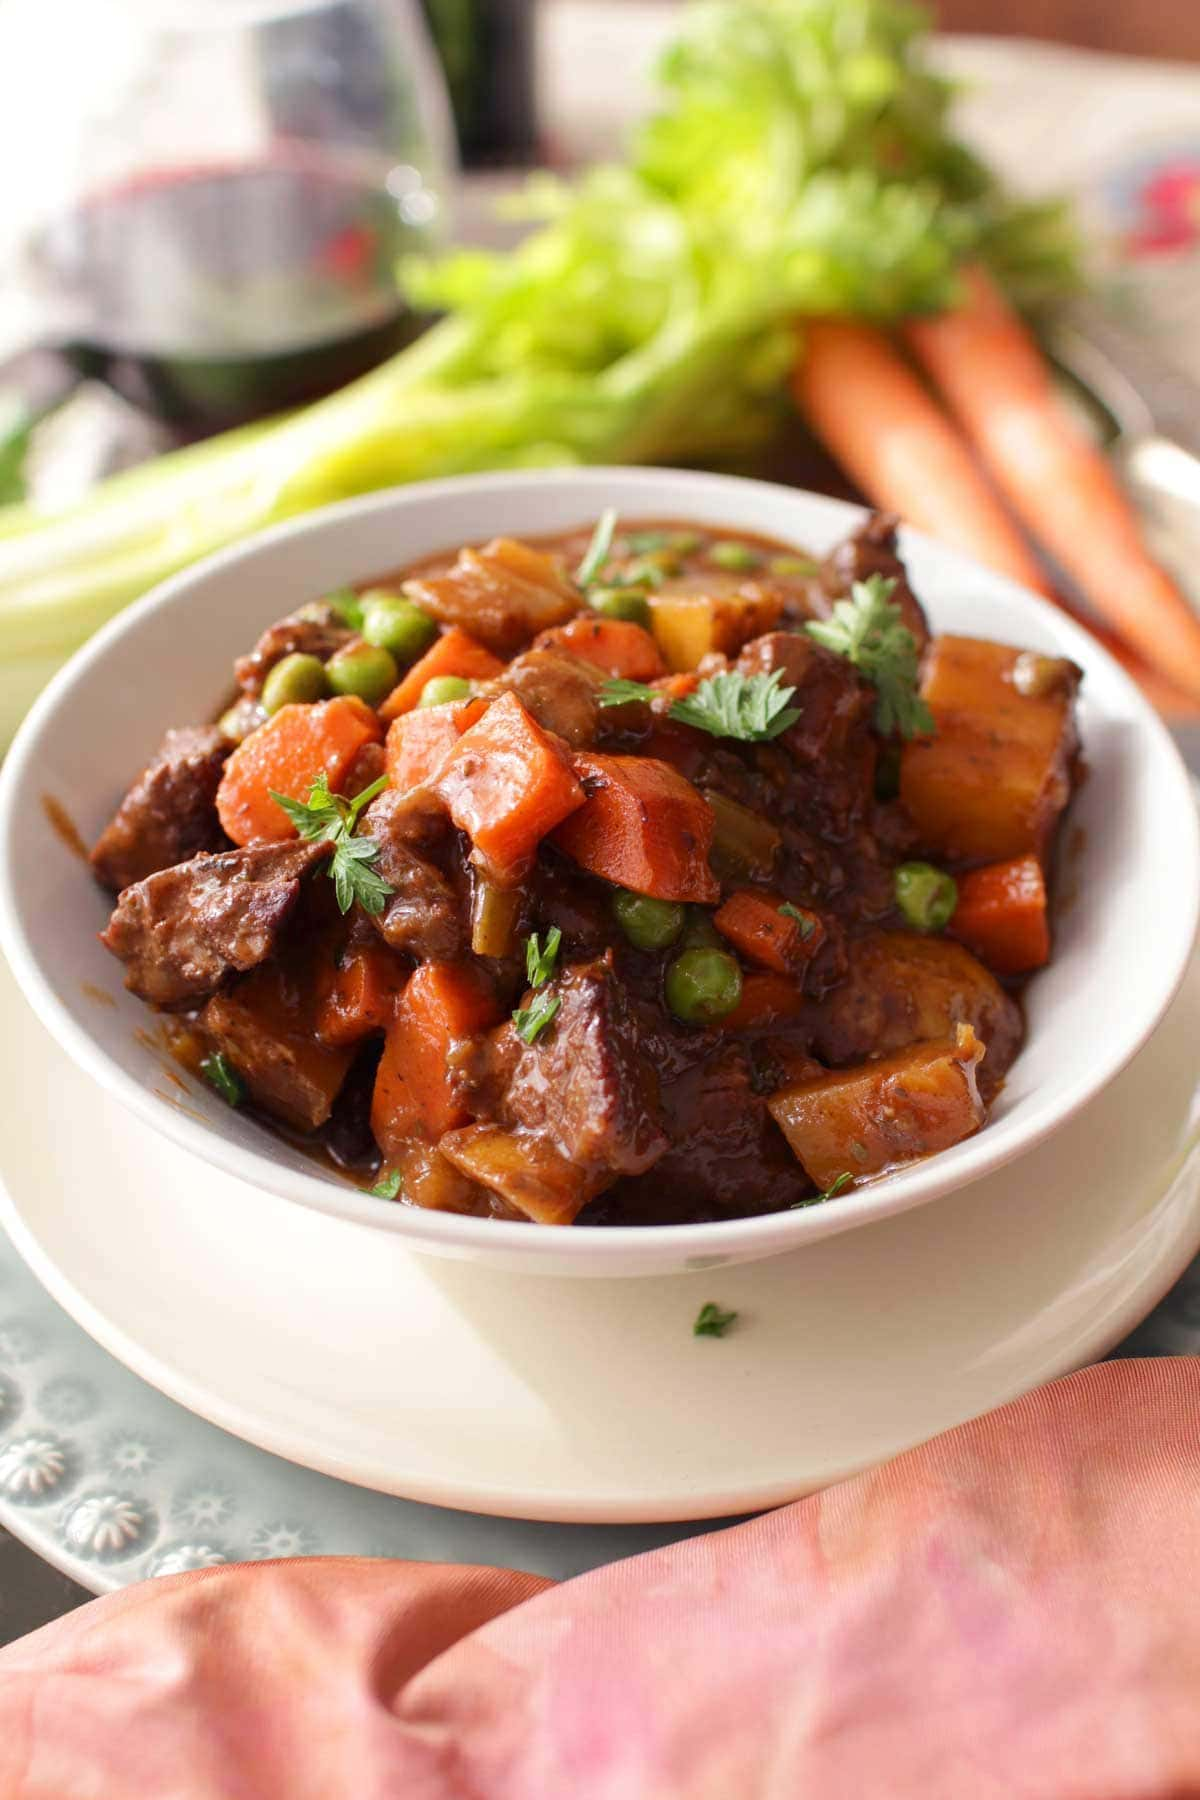 Beef stew in a bowl on a metal tray next to two carrots, a stalk of celery, and a glass of red wine